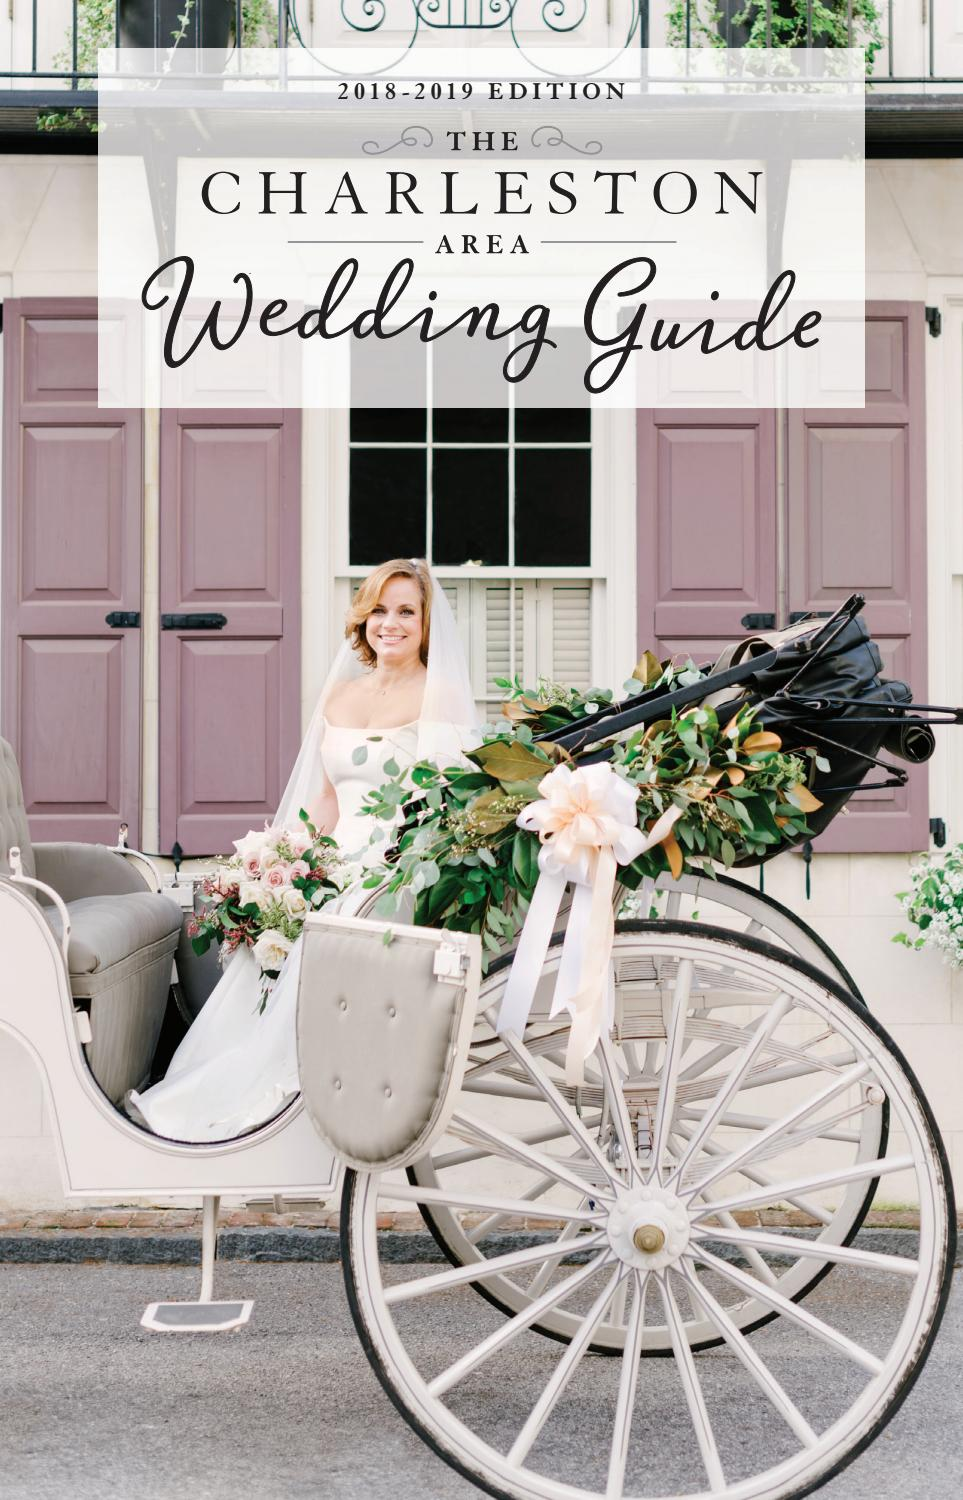 shop majestic home goods red plantation floral square.htm charleston area wedding guide 2018 2019 by explore charleston issuu  charleston area wedding guide 2018 2019